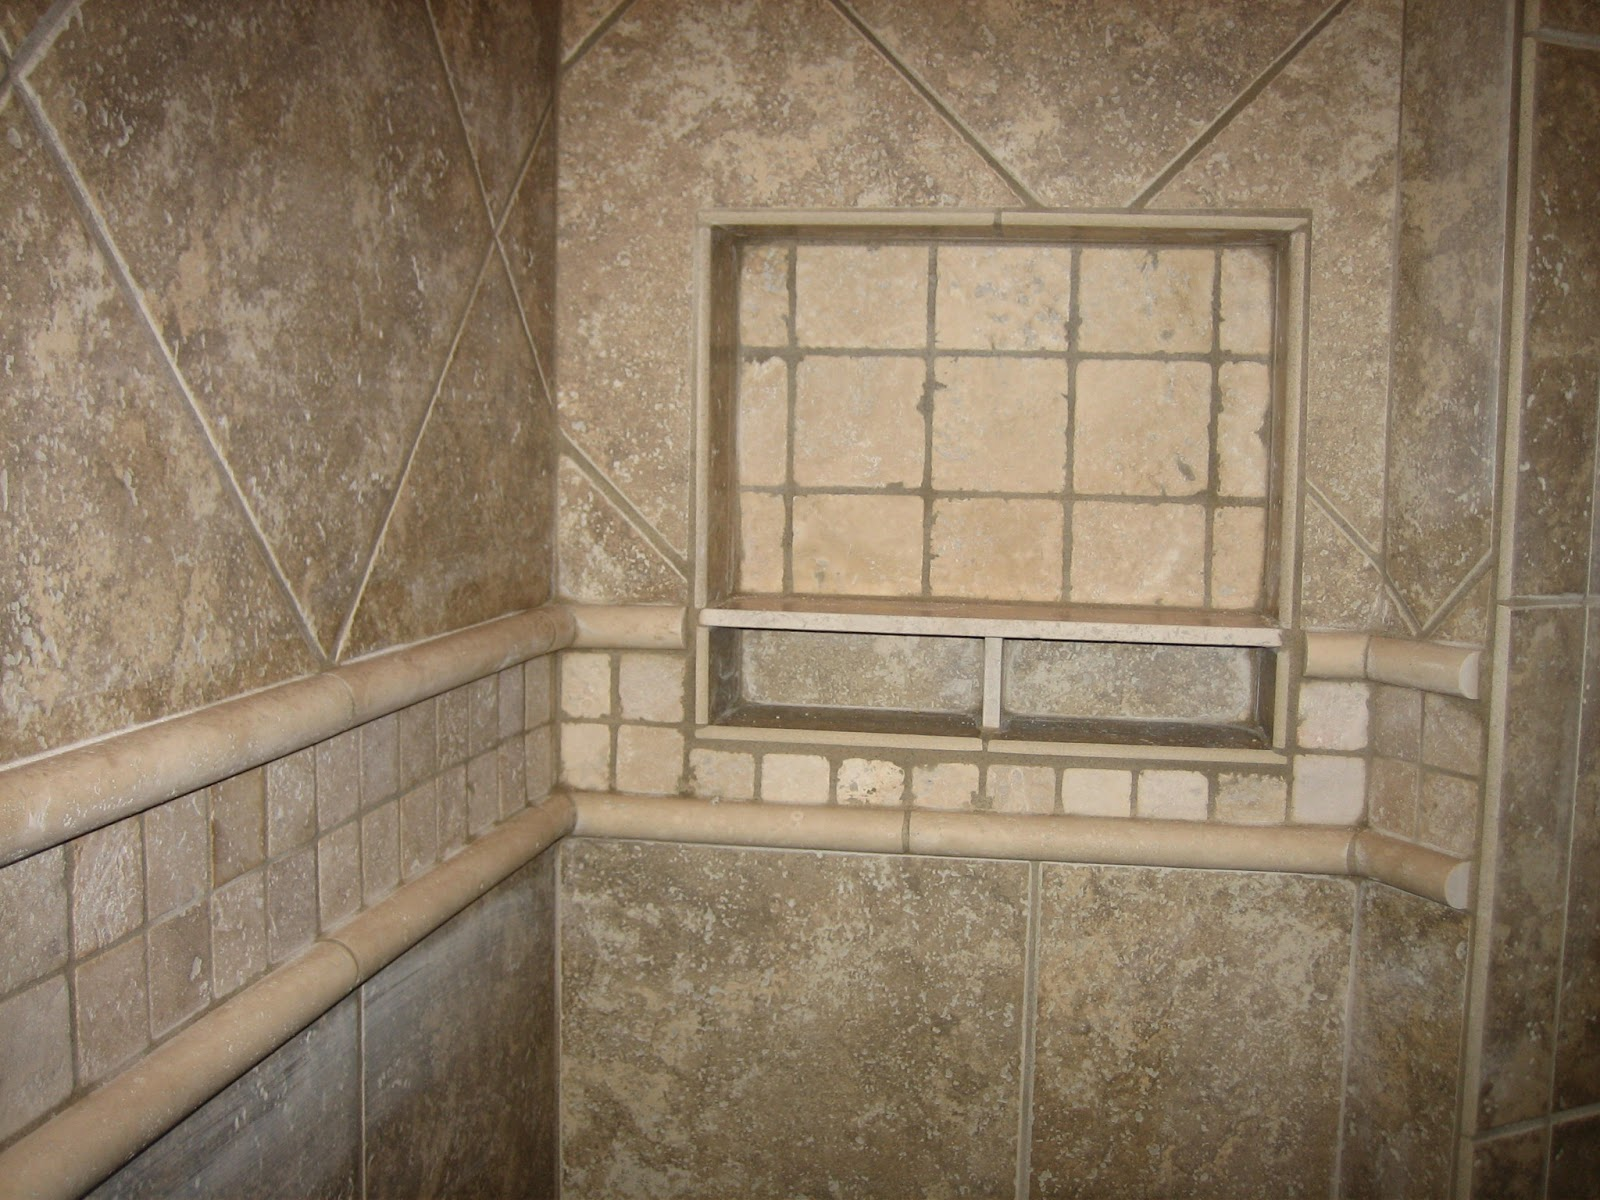 walk in shower tile design ideas tile design ideas tile walk - Shower Tile Design Ideas